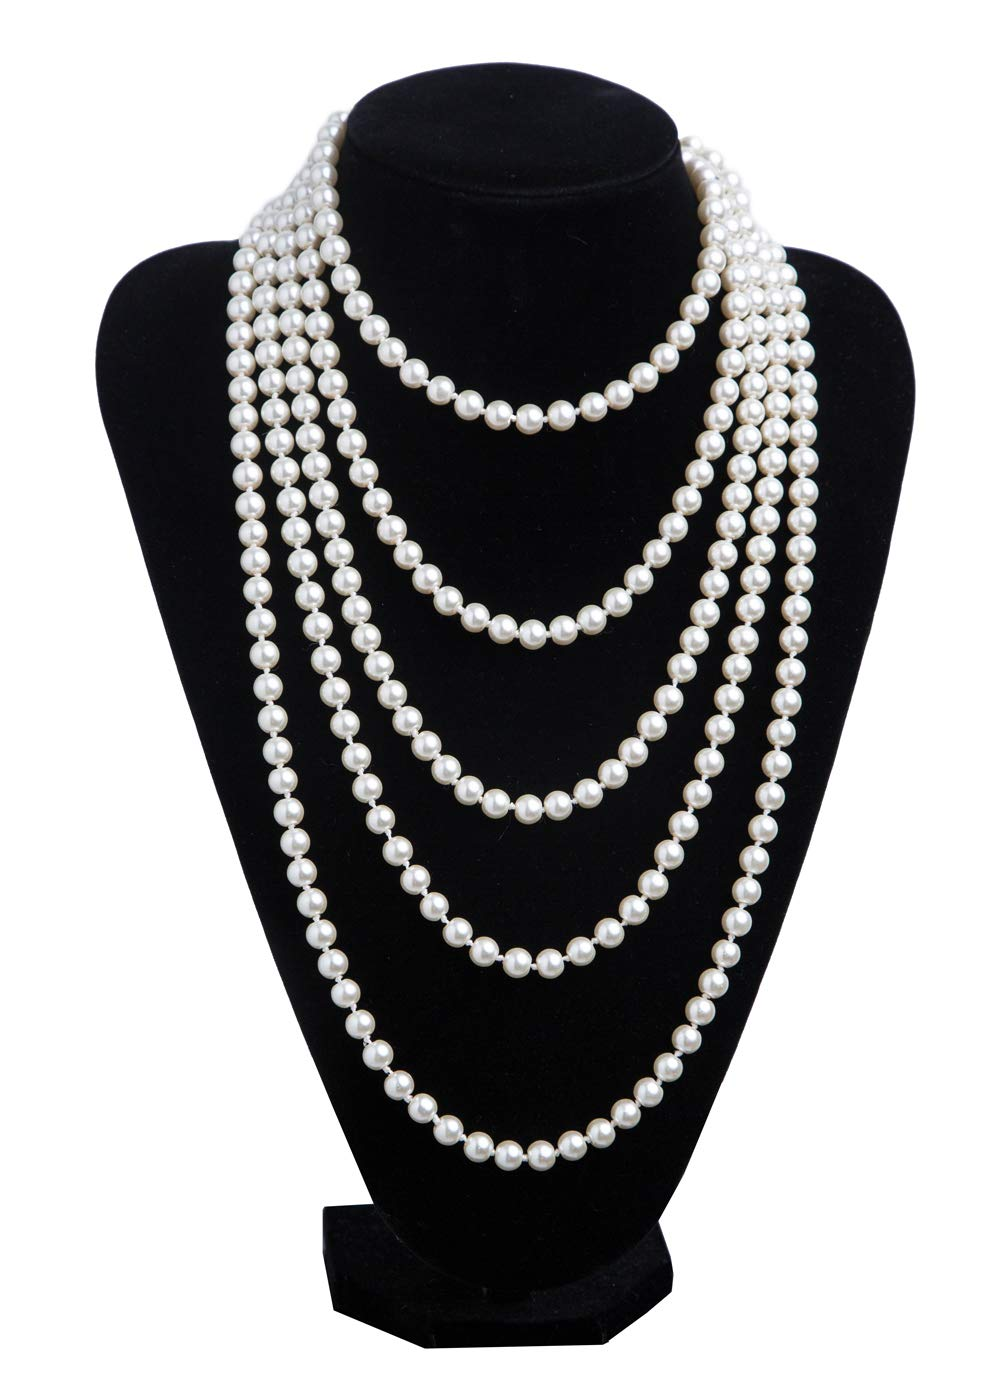 1920s Pearls Necklace Gatsby Accessories Vintage Costume Jewelry Faux Ivory Pearl Cream Long Necklace for Women (A-White-1)